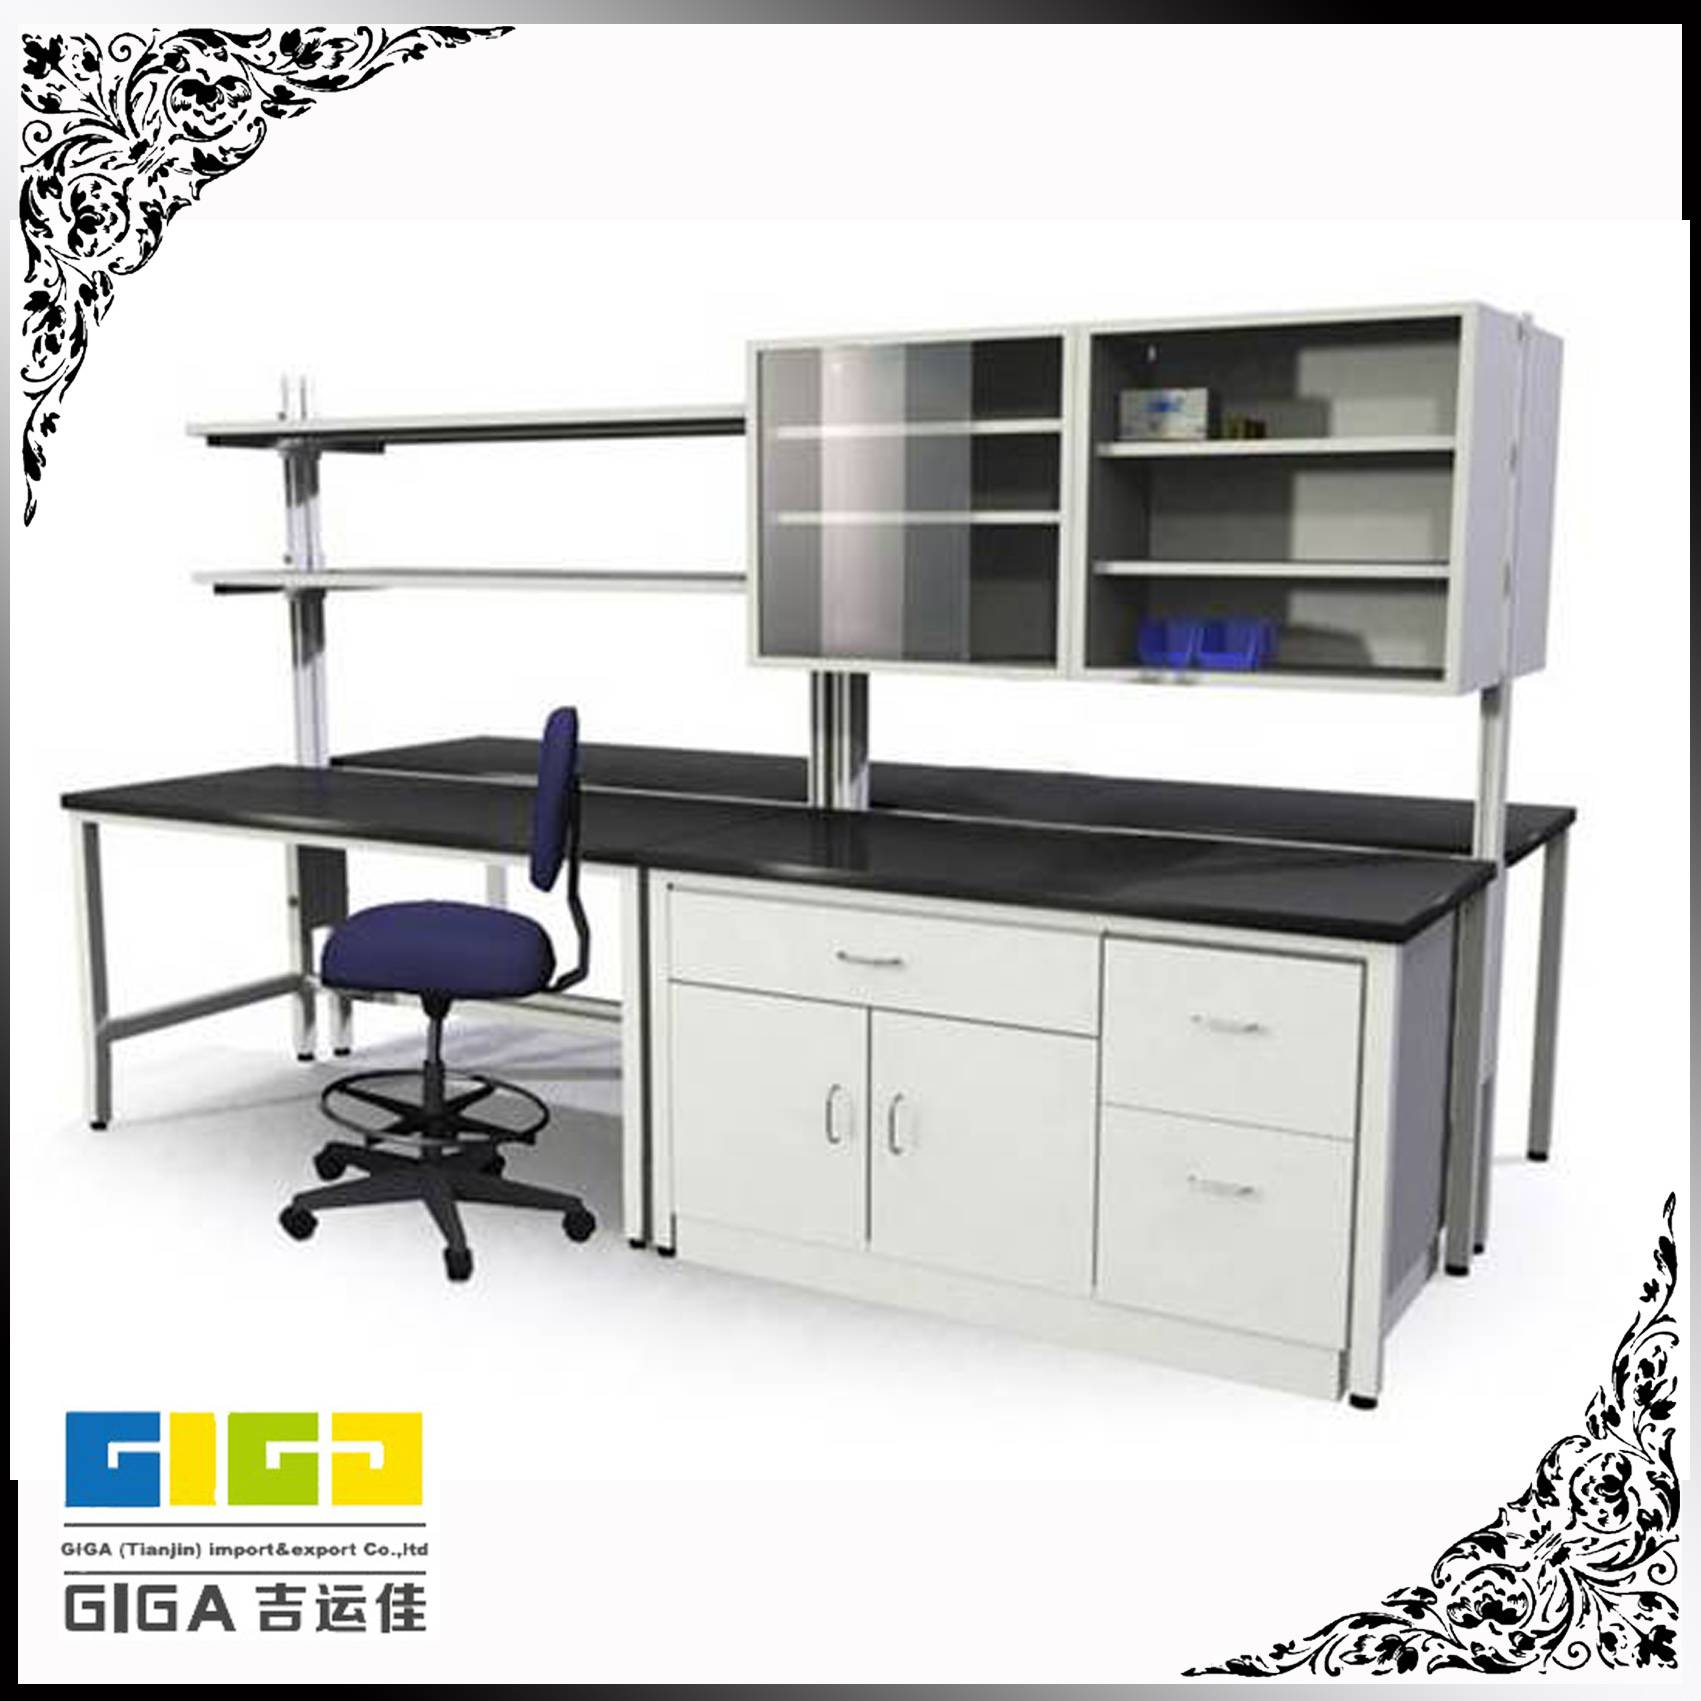 GIGA Modern Design Cheap Computer Lab Furniture - GIGA ...